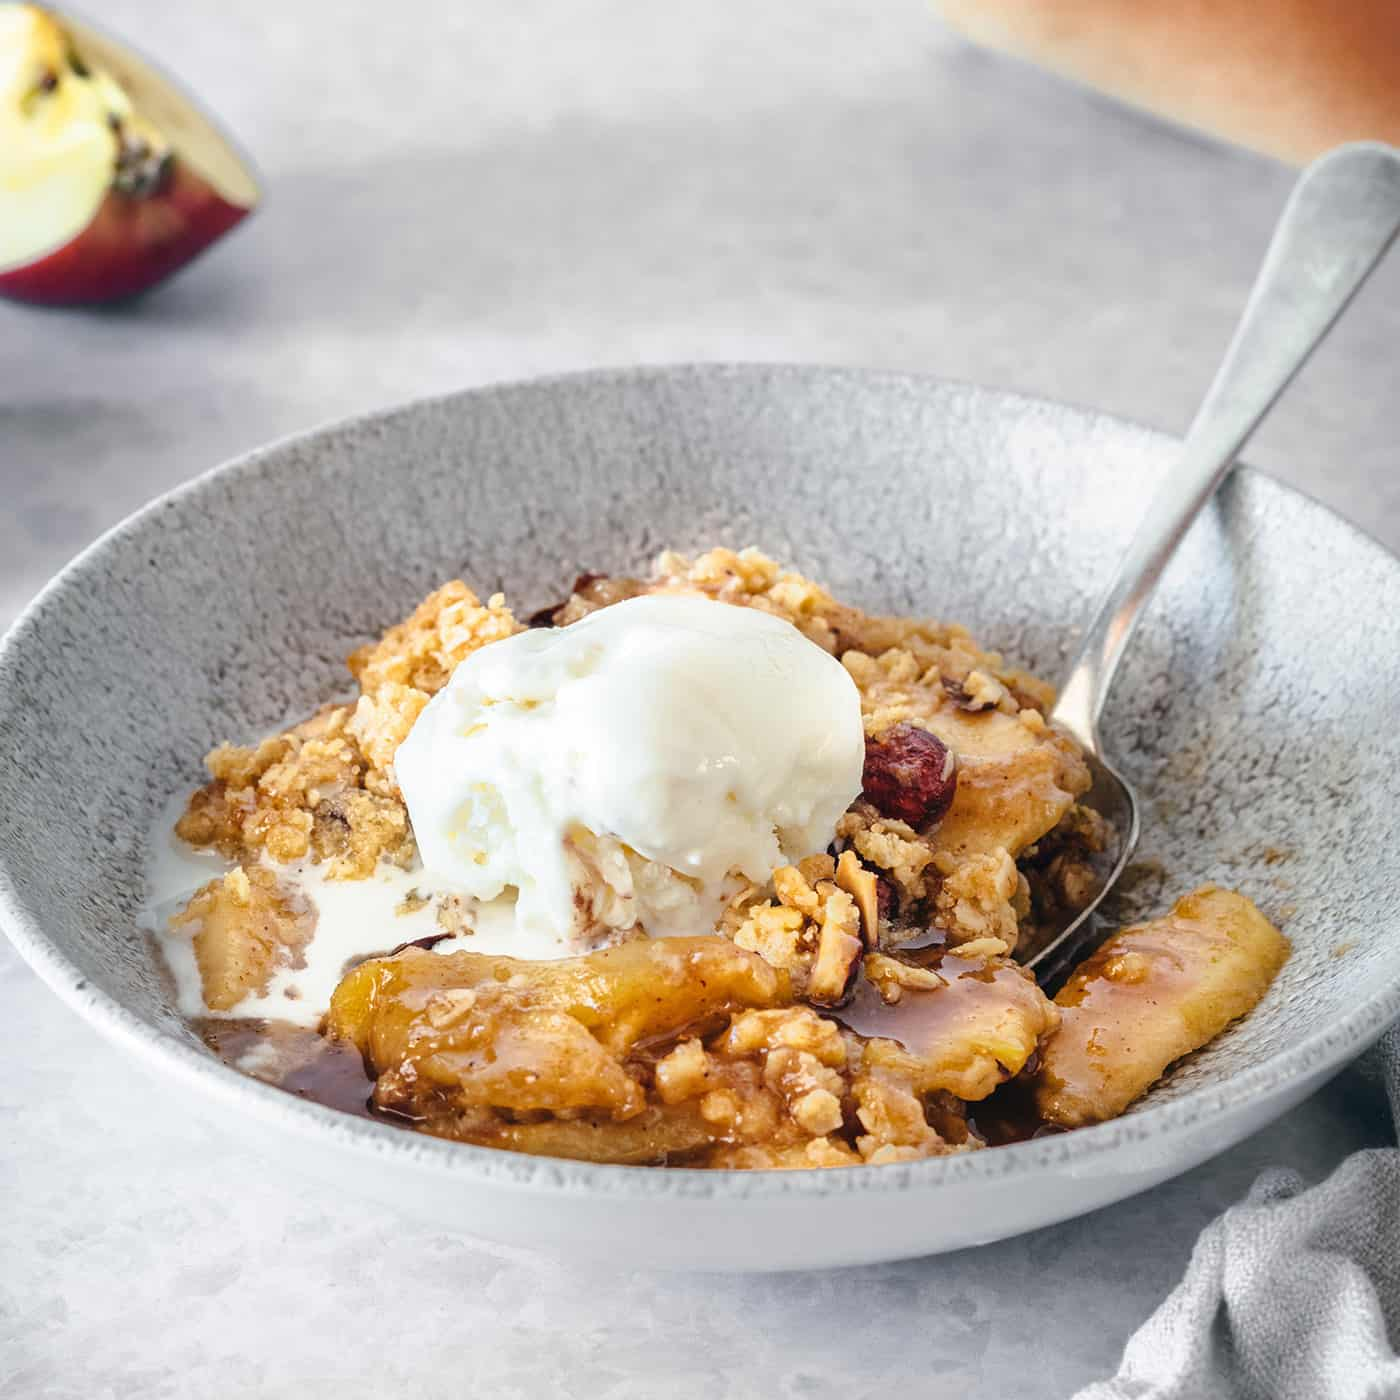 apple crisp with caramel and almonds in a low wide gray bowl, topped with a scoop of ice cream